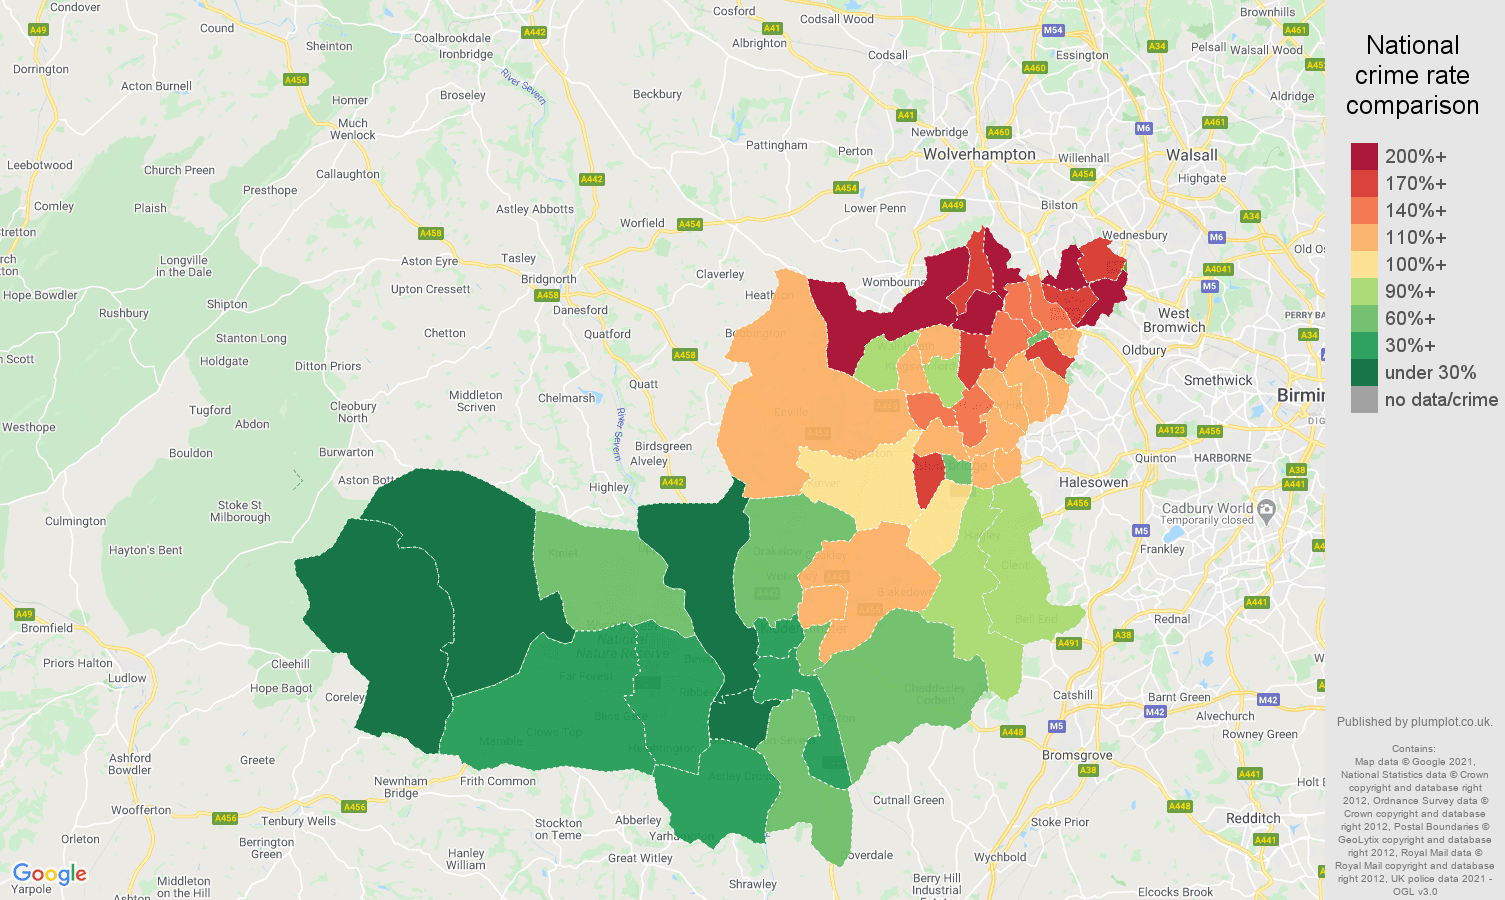 Dudley vehicle crime rate comparison map